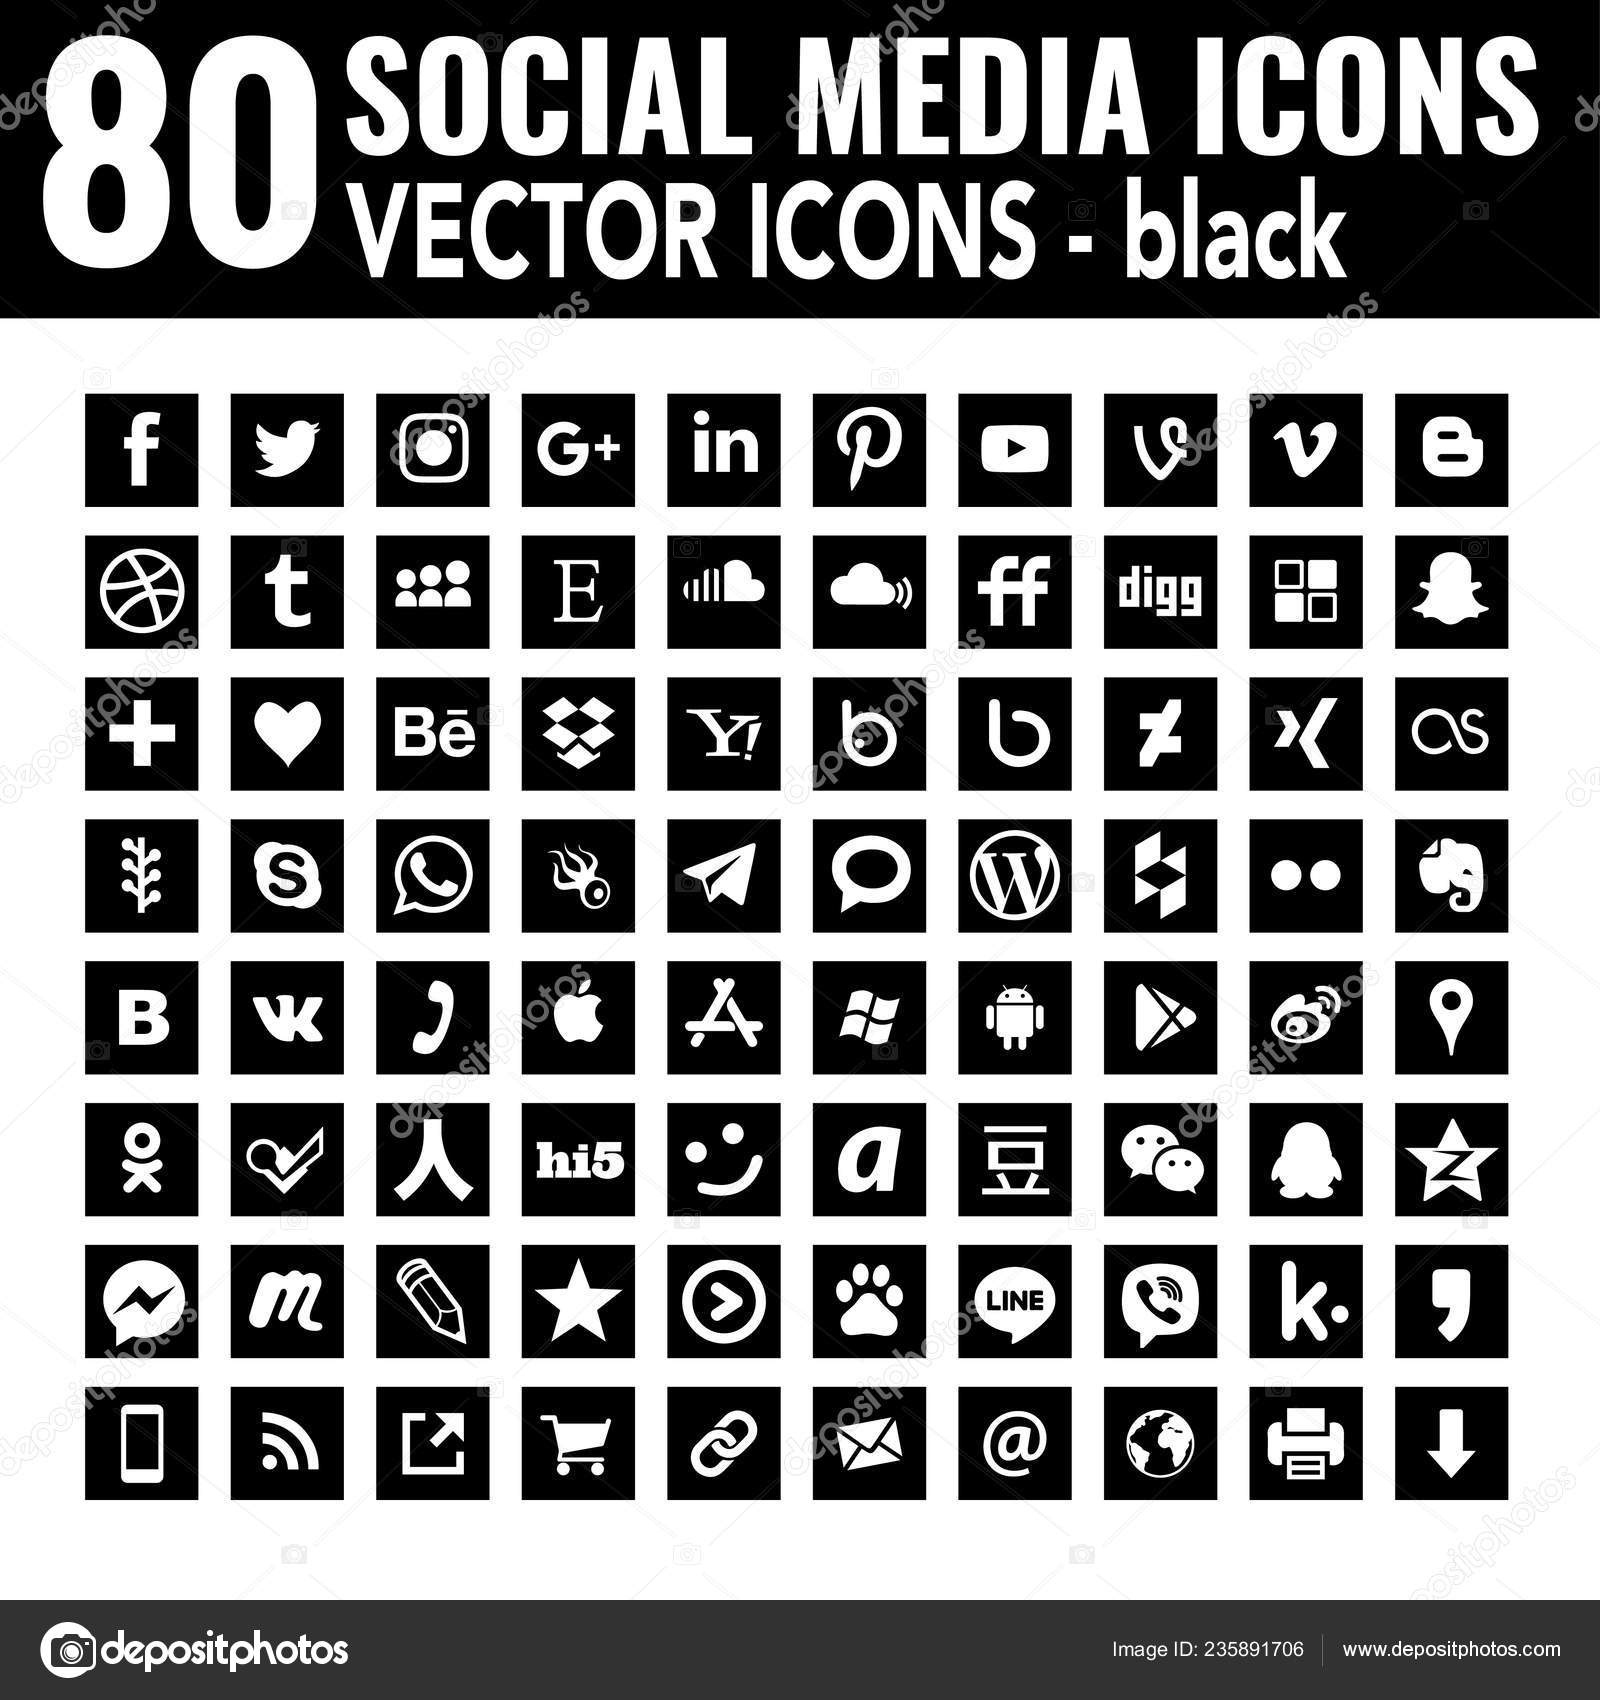 Black And White Social Media Icons For Email Signature Flat Icons Black White Square Vector Social Media Icons Base Stock Vector C Dadartdesign 235891706